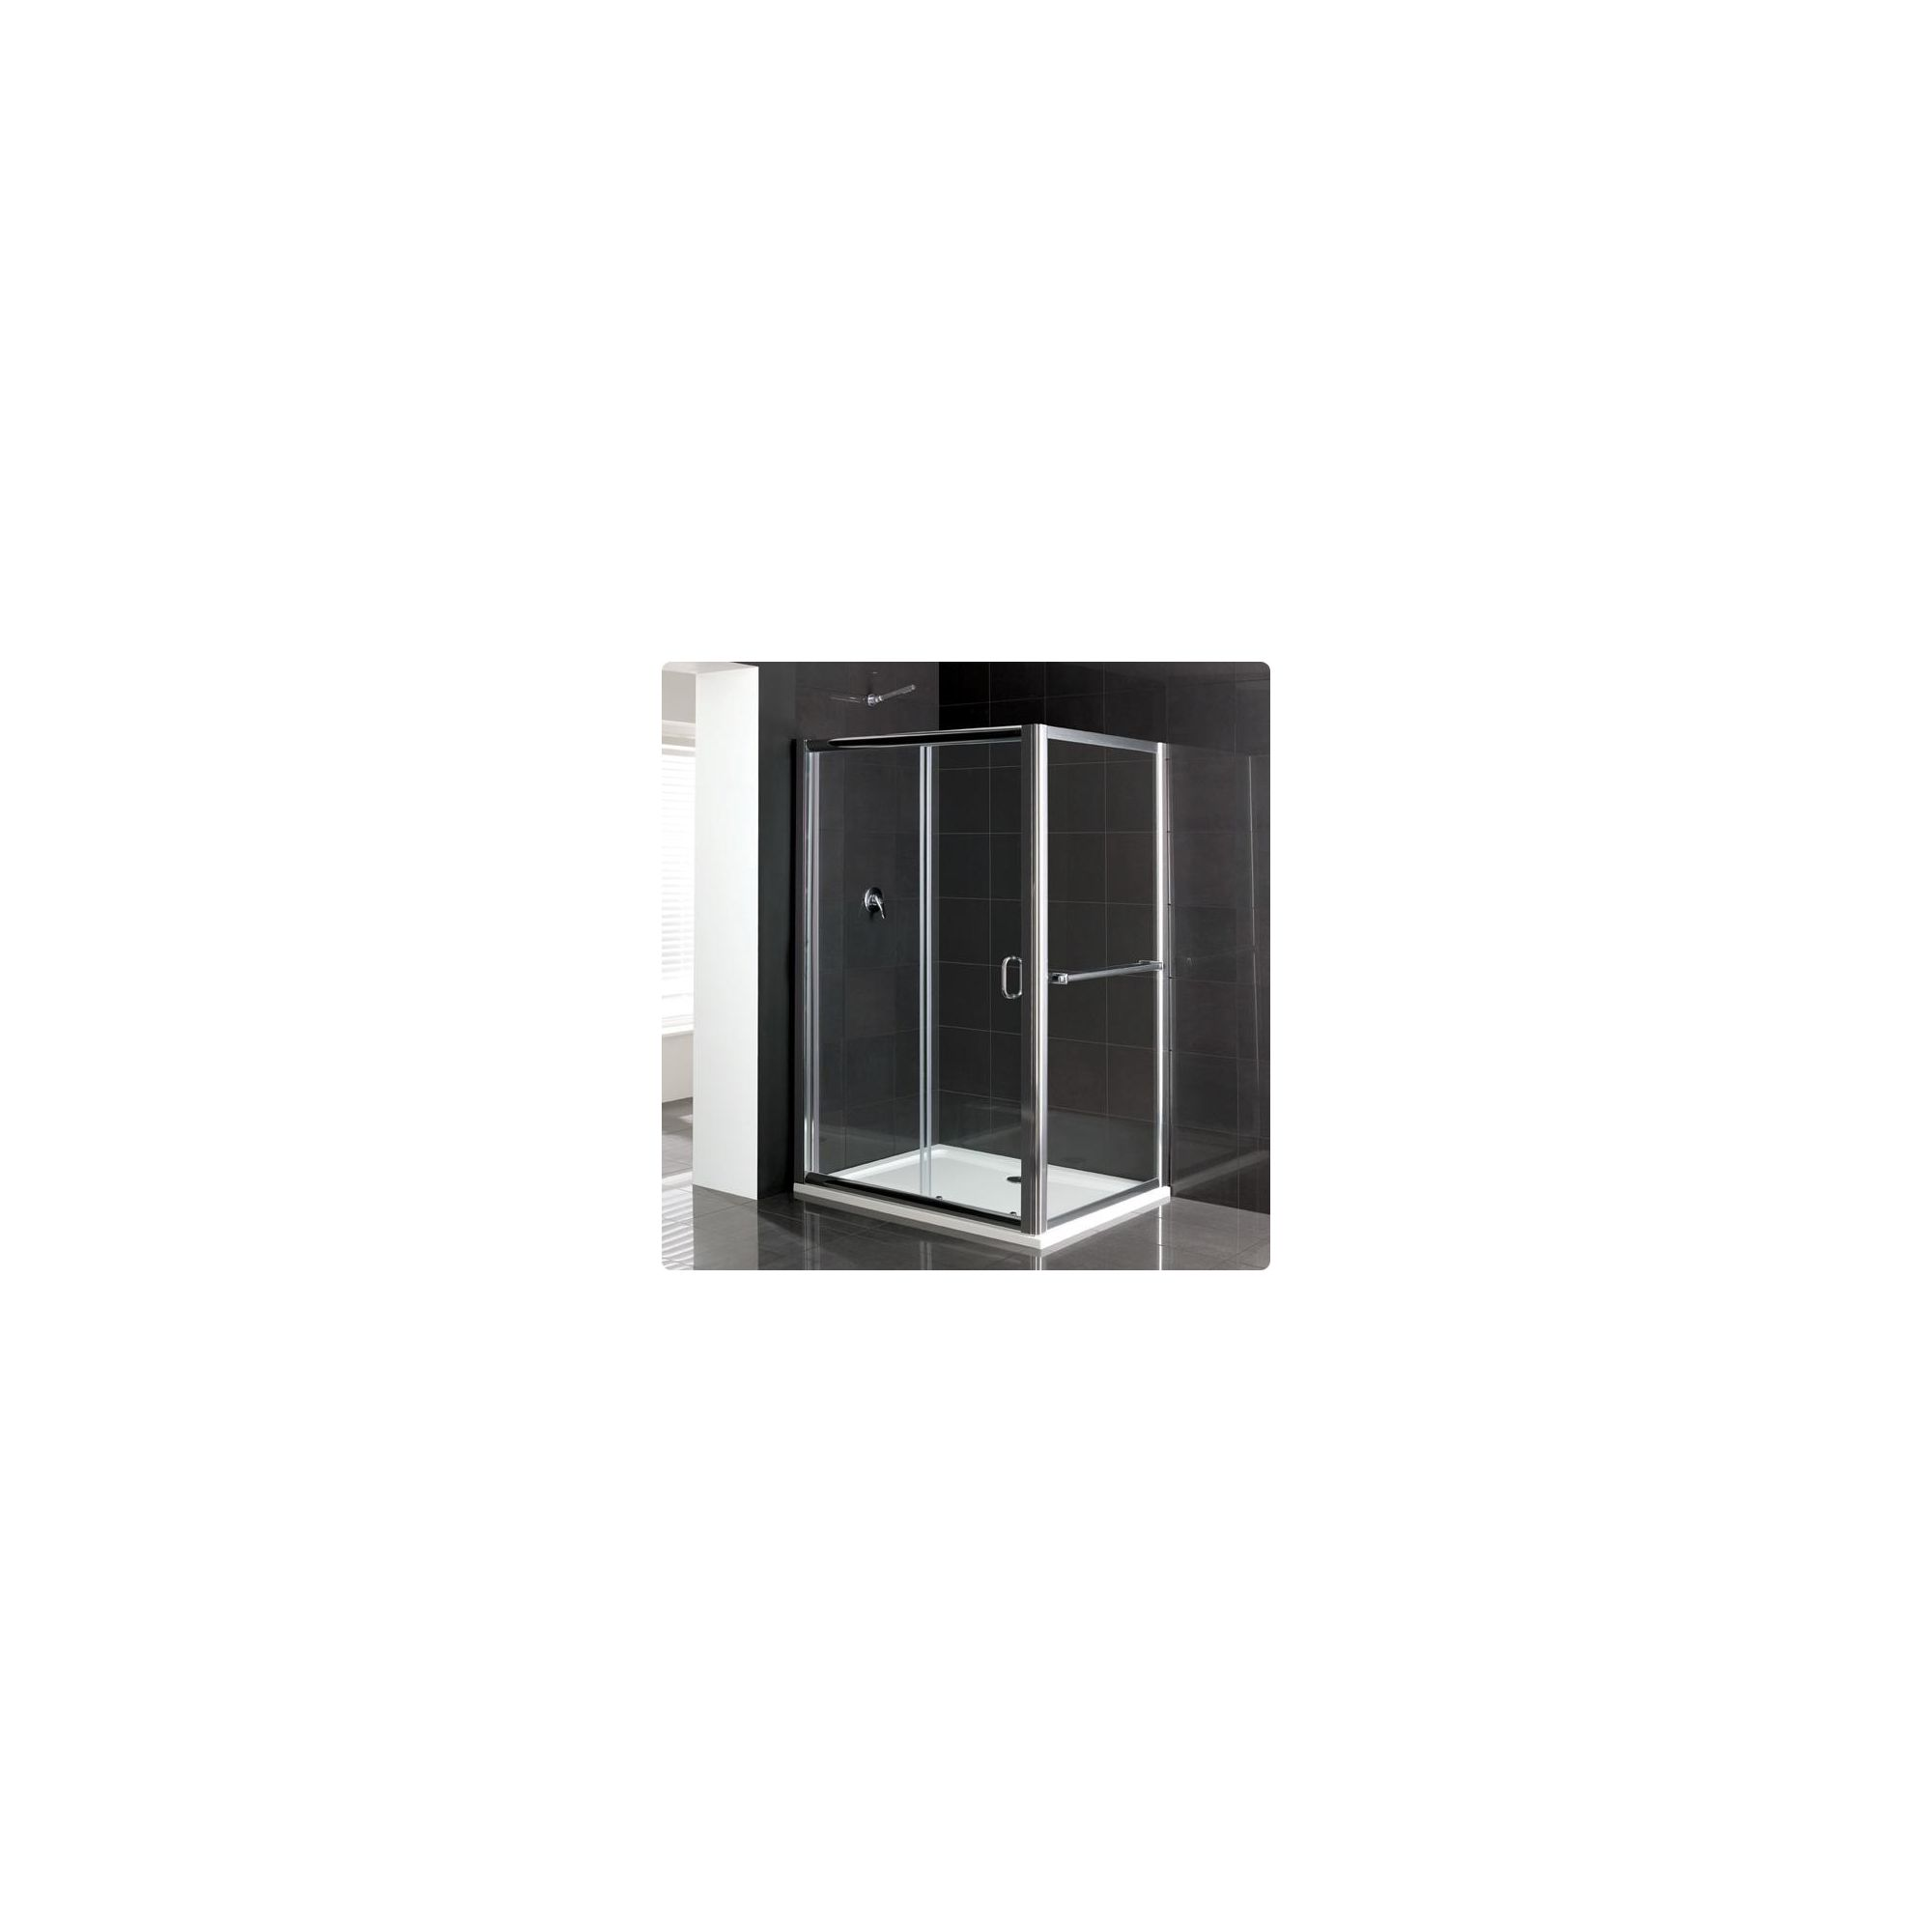 Duchy Elite Silver Sliding Door Shower Enclosure, 1200mm x 800mm, Standard Tray, 6mm Glass at Tesco Direct